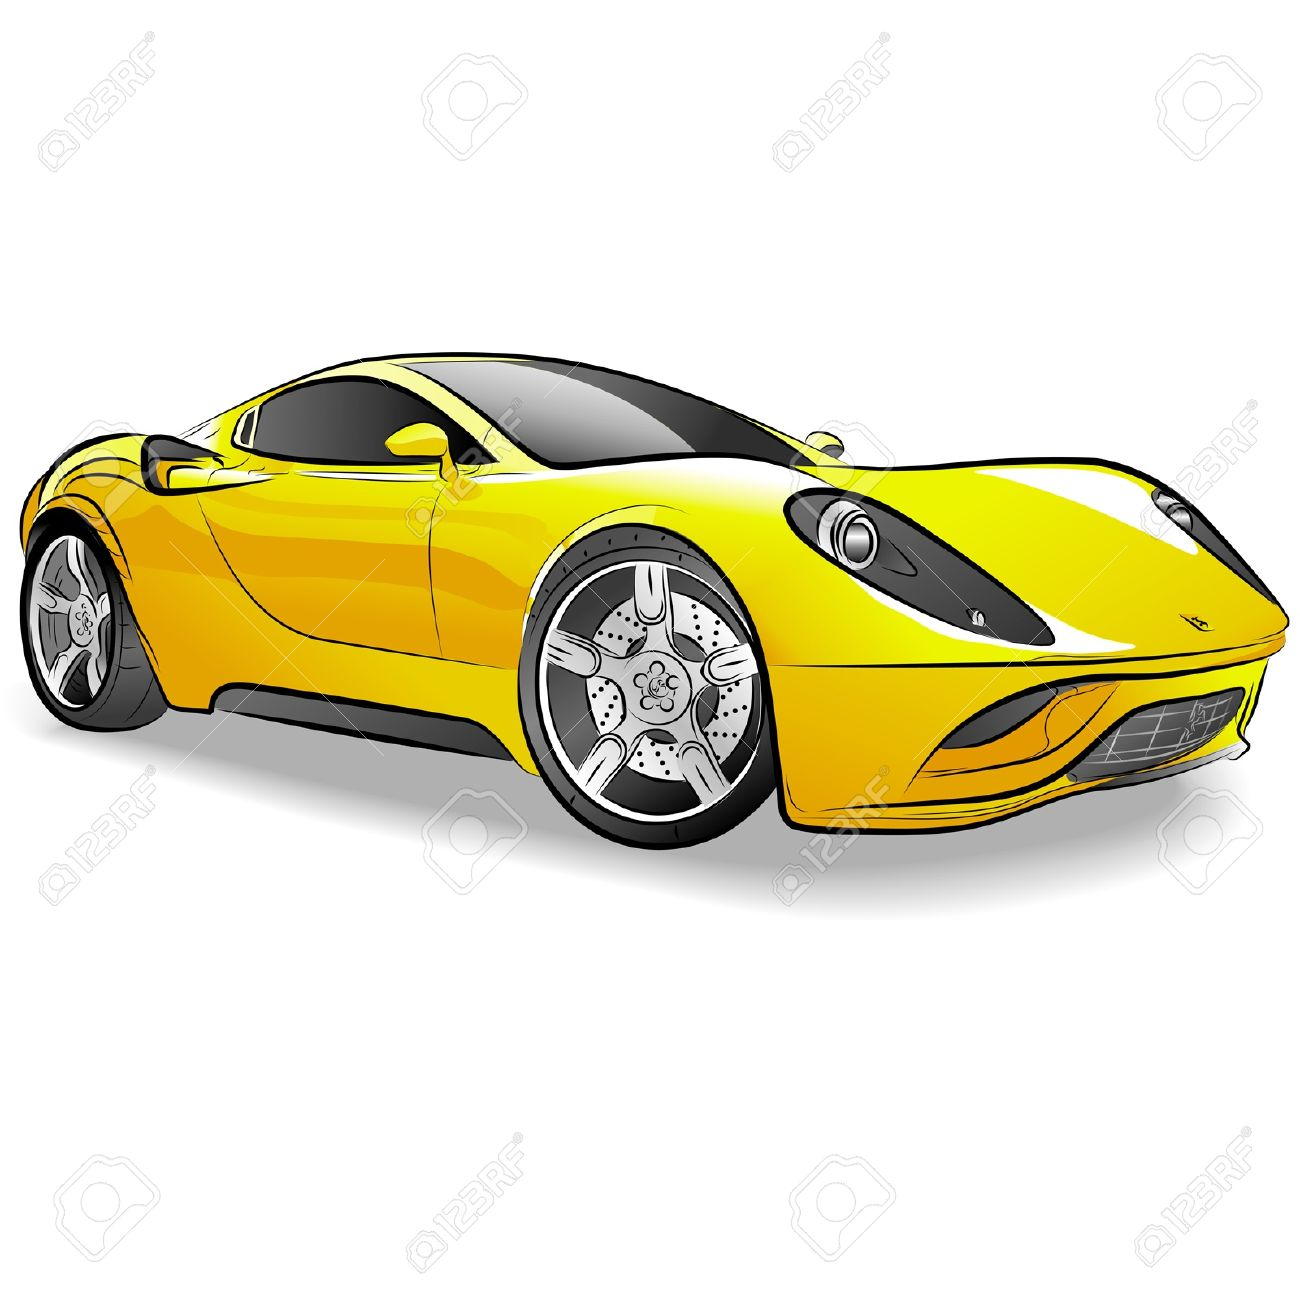 Drawing Of The Yellow Expensive Car Royalty Free Cliparts Vectors